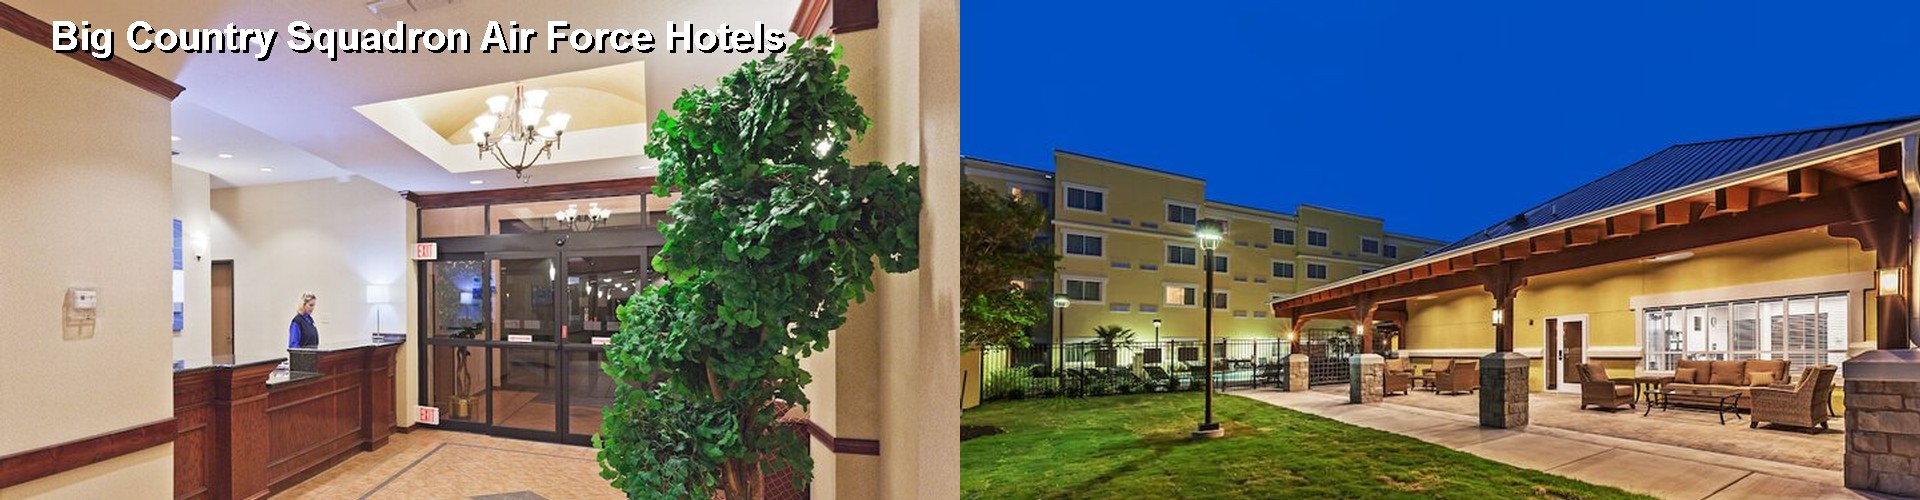 5 Best Hotels near Big Country Squadron Air Force